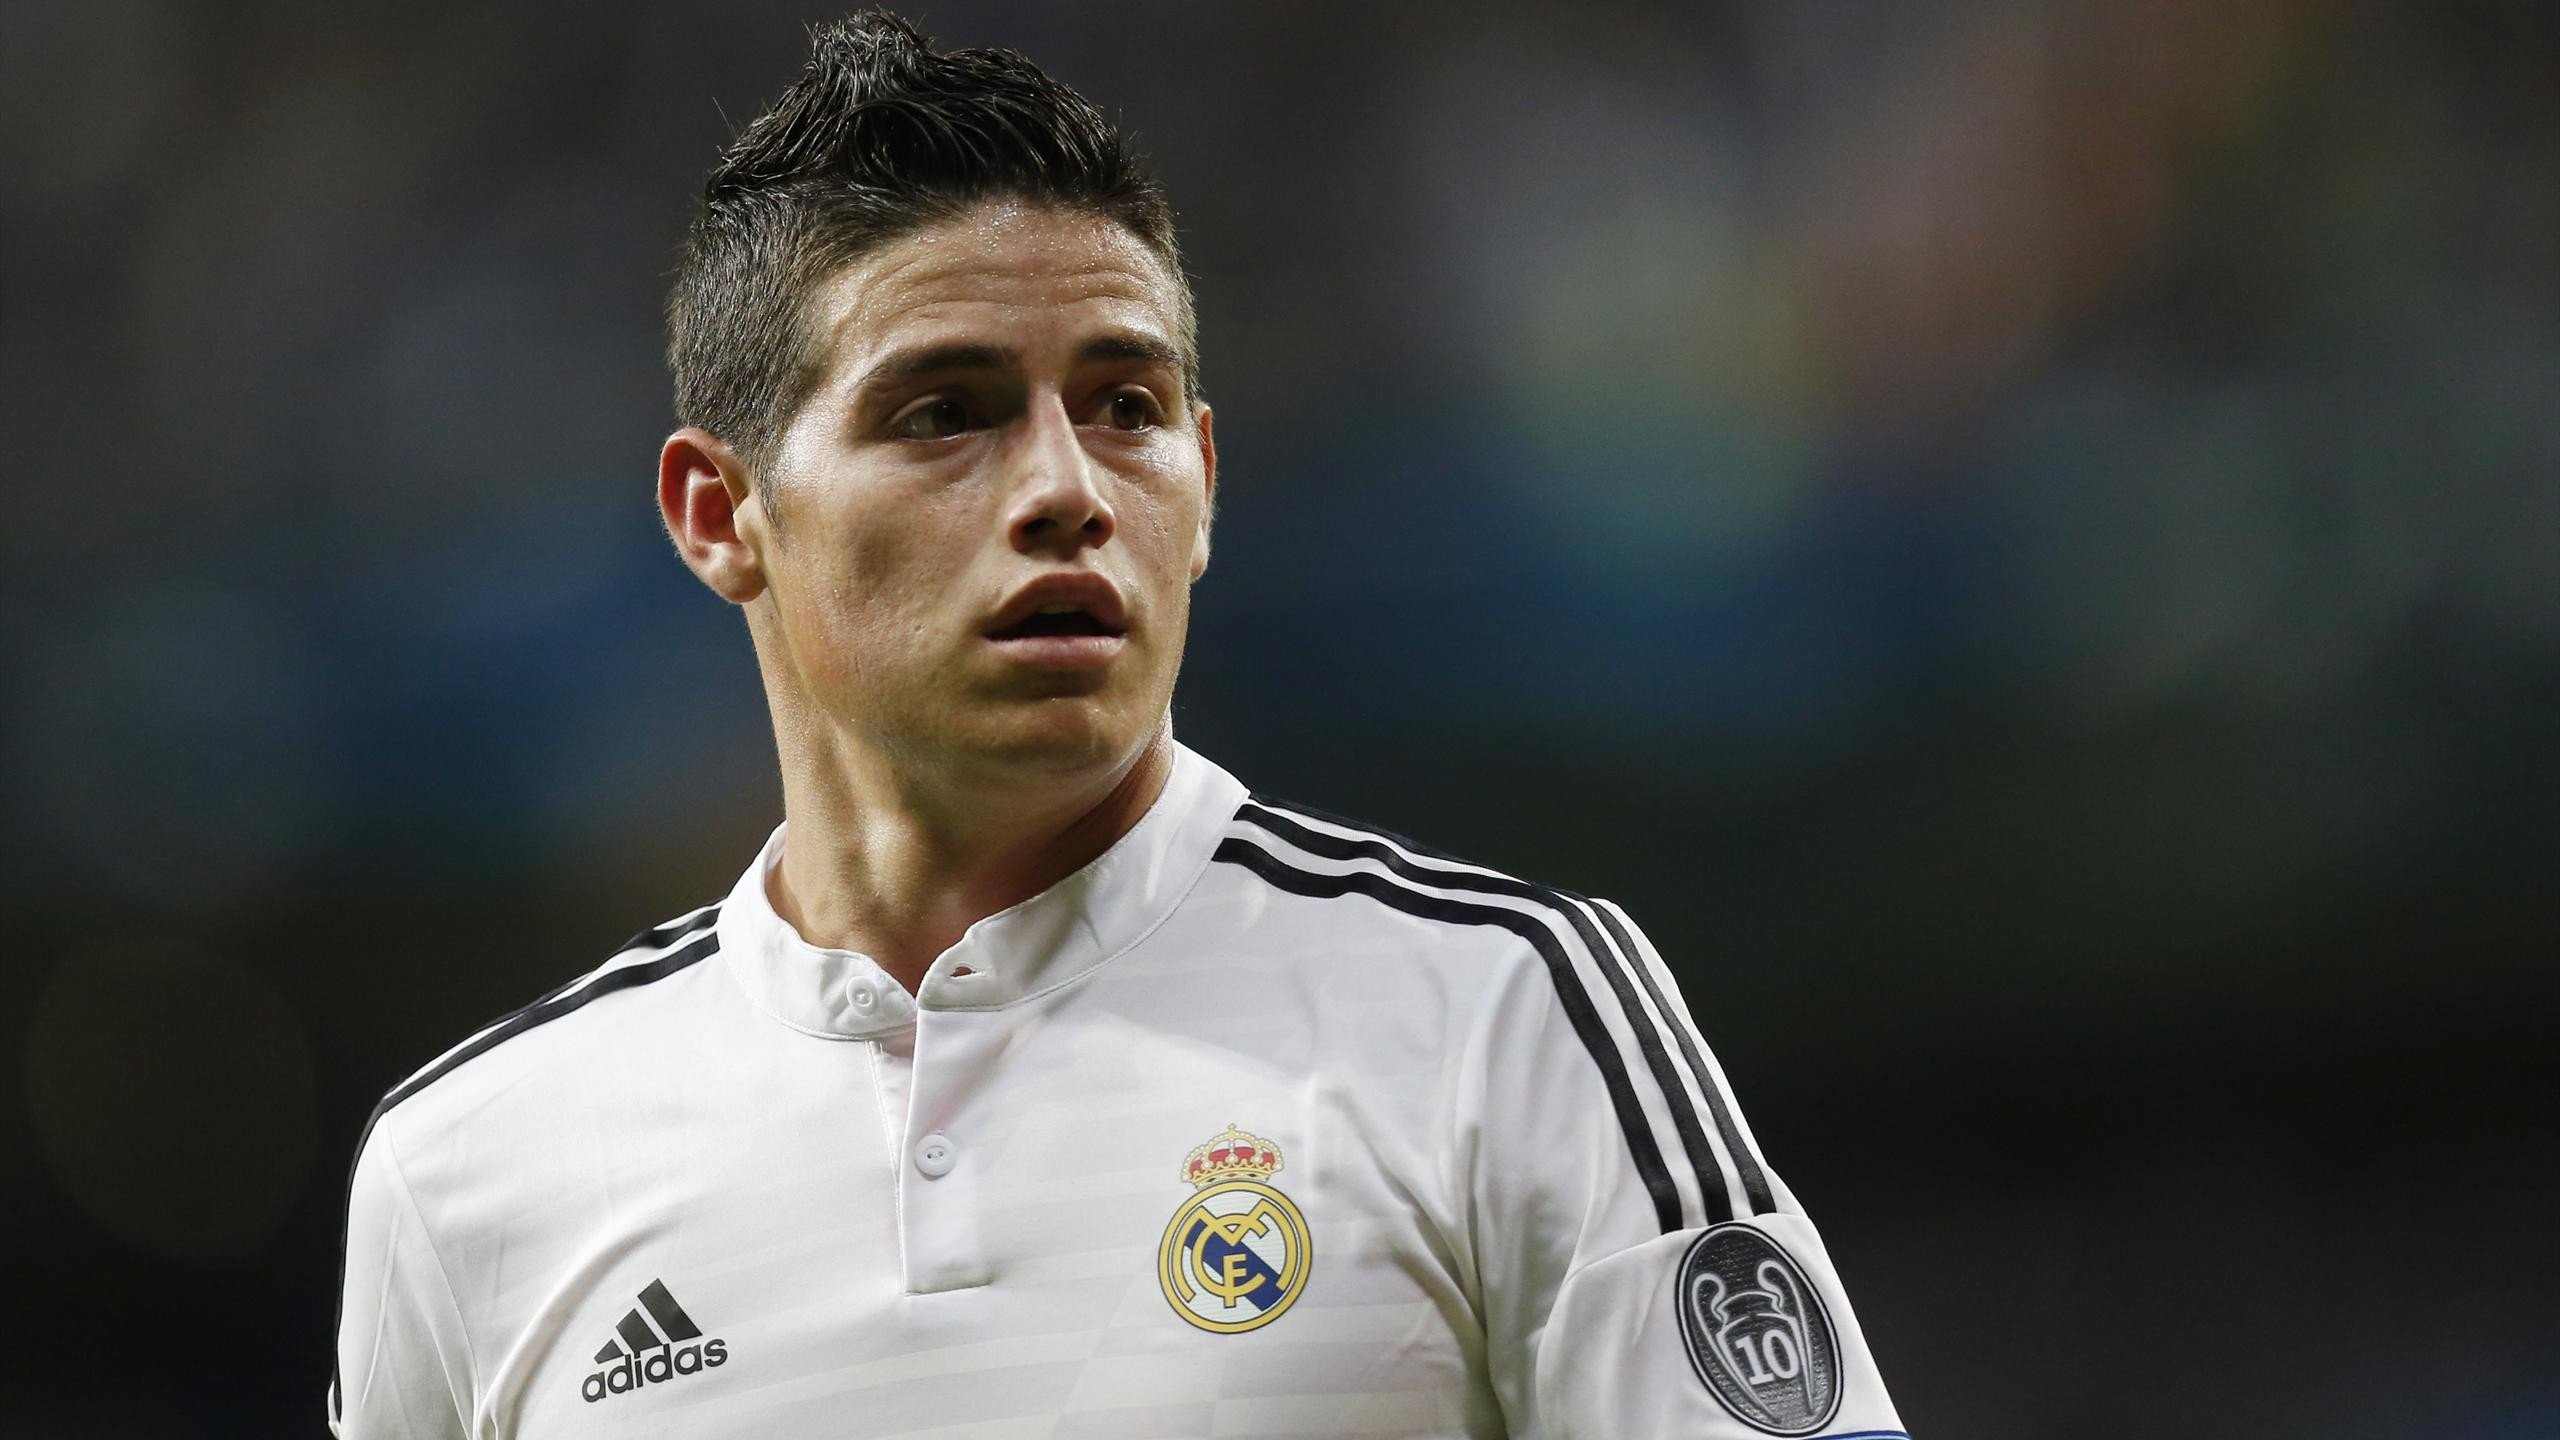 Awesome James Rodriguez free background ID:48920 for hd 2560x1440 desktop